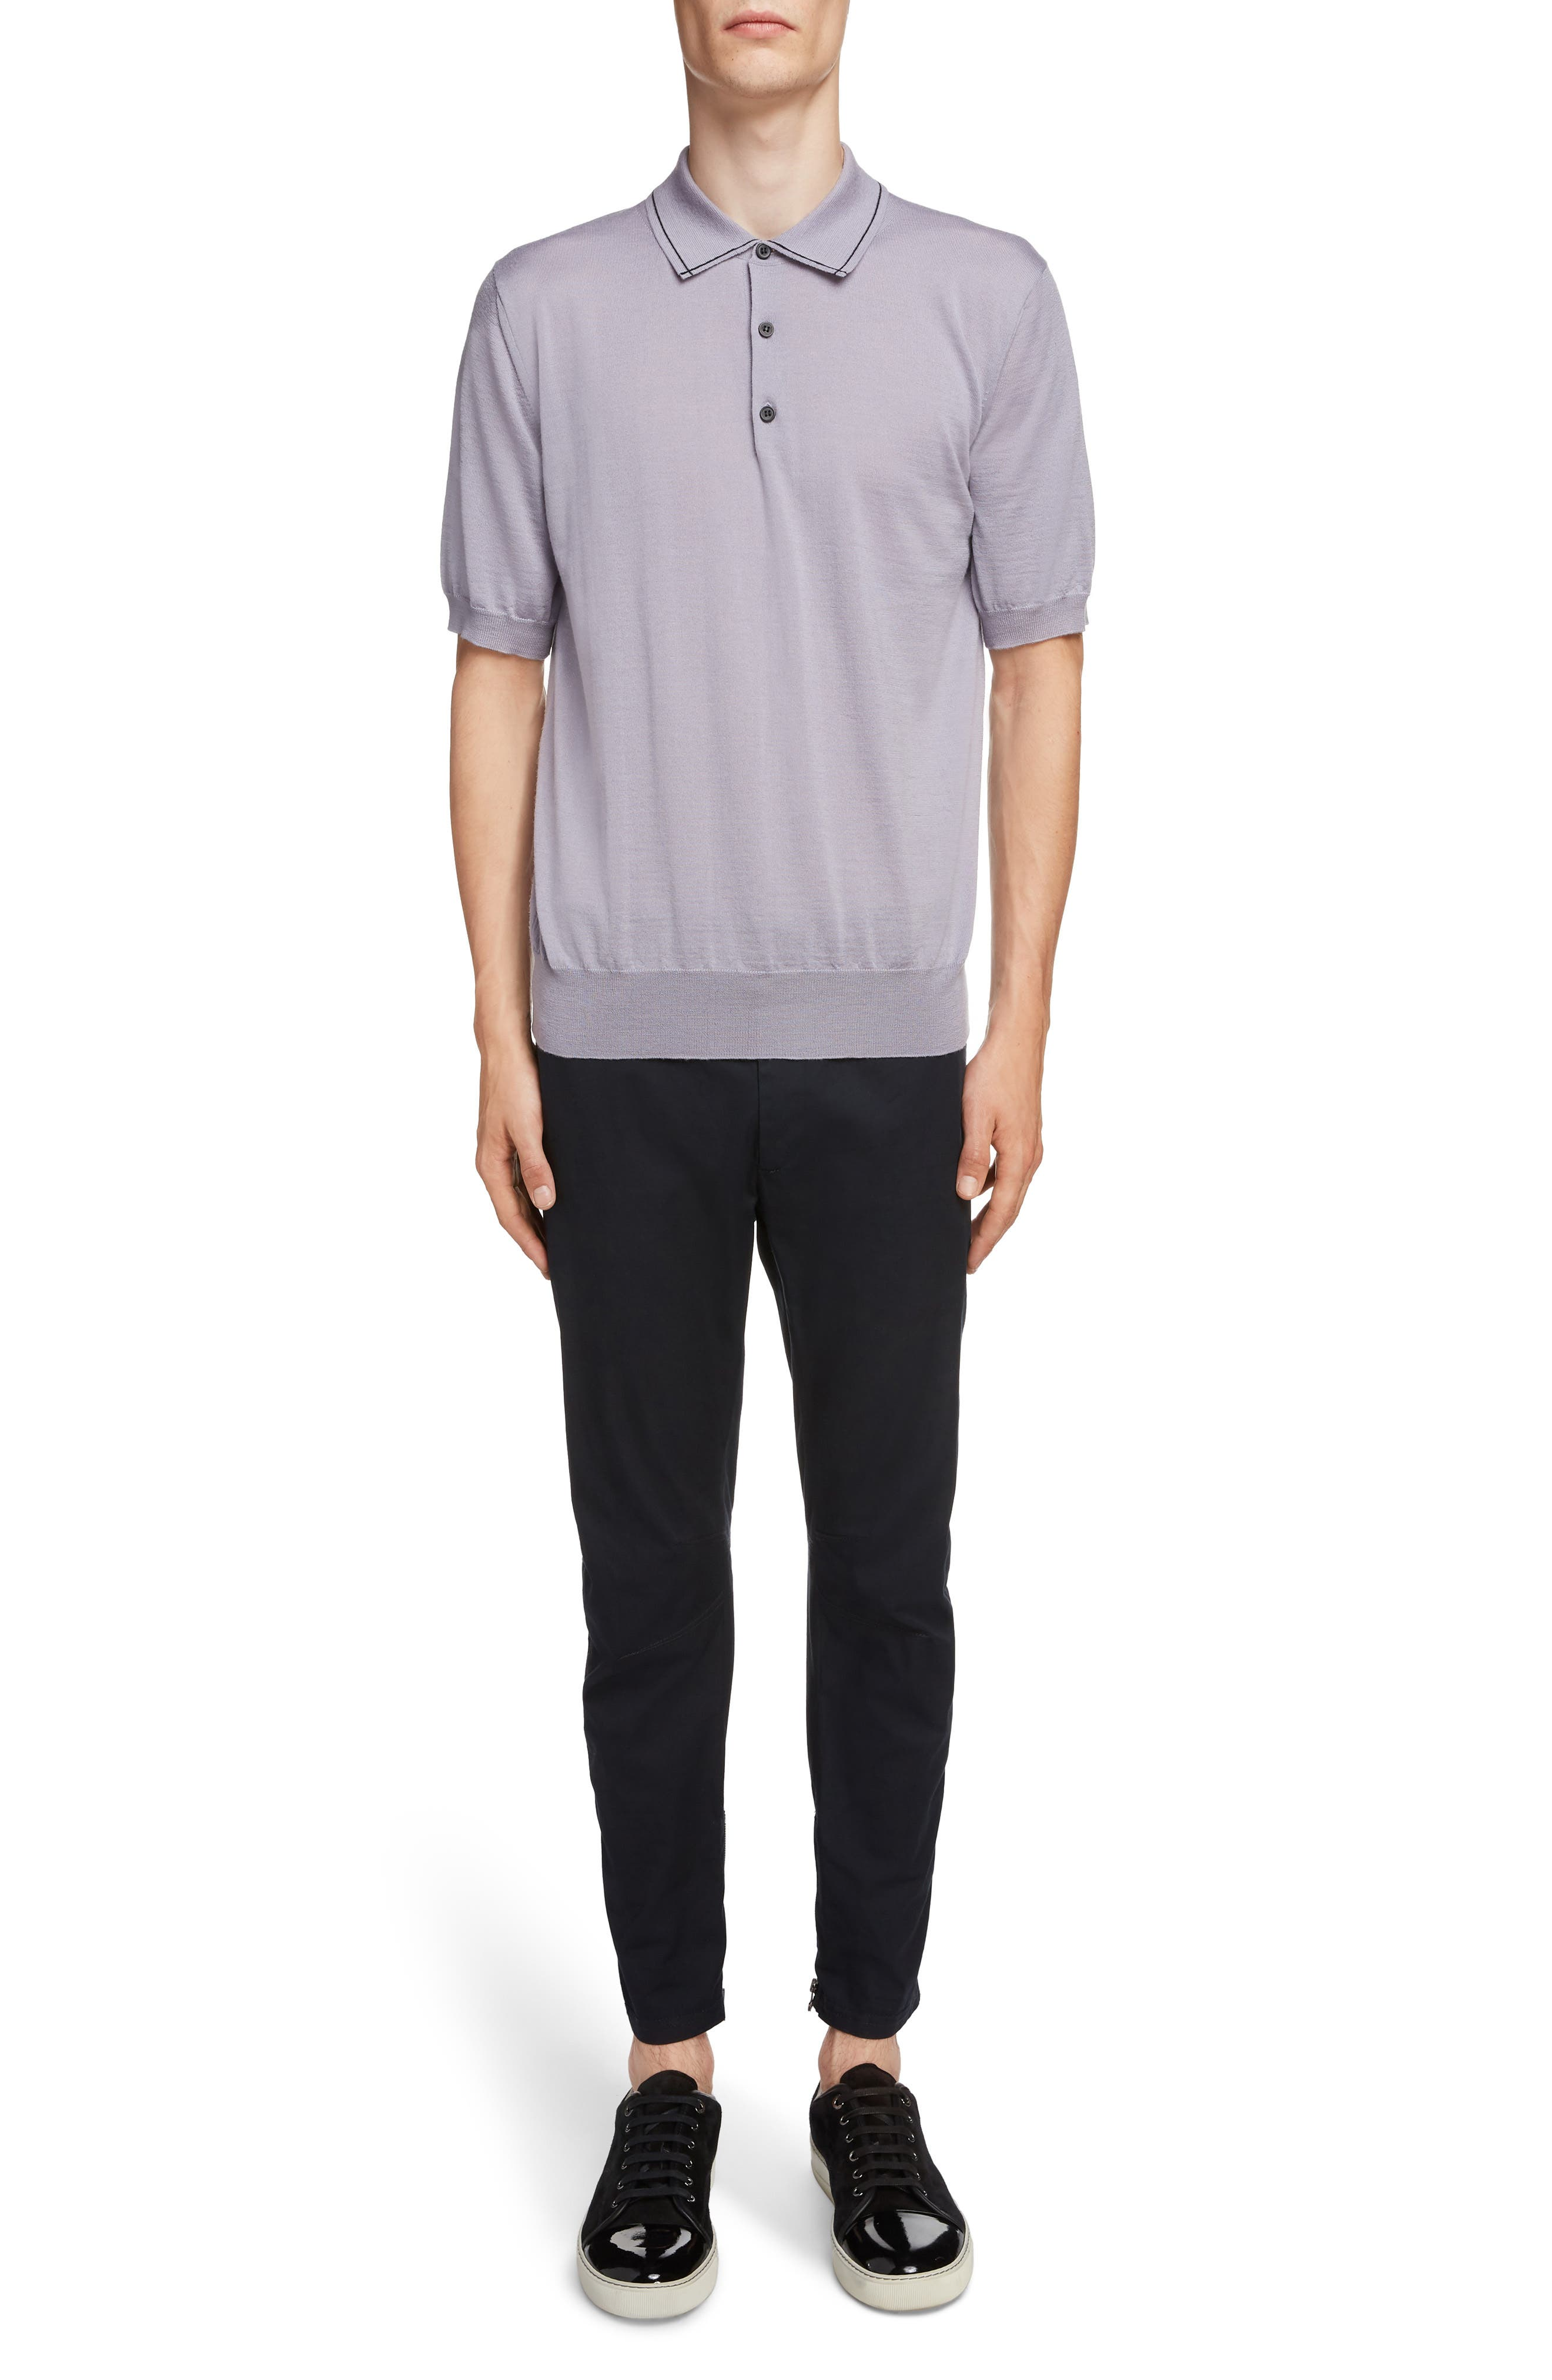 LANVIN, Piped Collar Wool Polo, Alternate thumbnail 6, color, LAVENDER